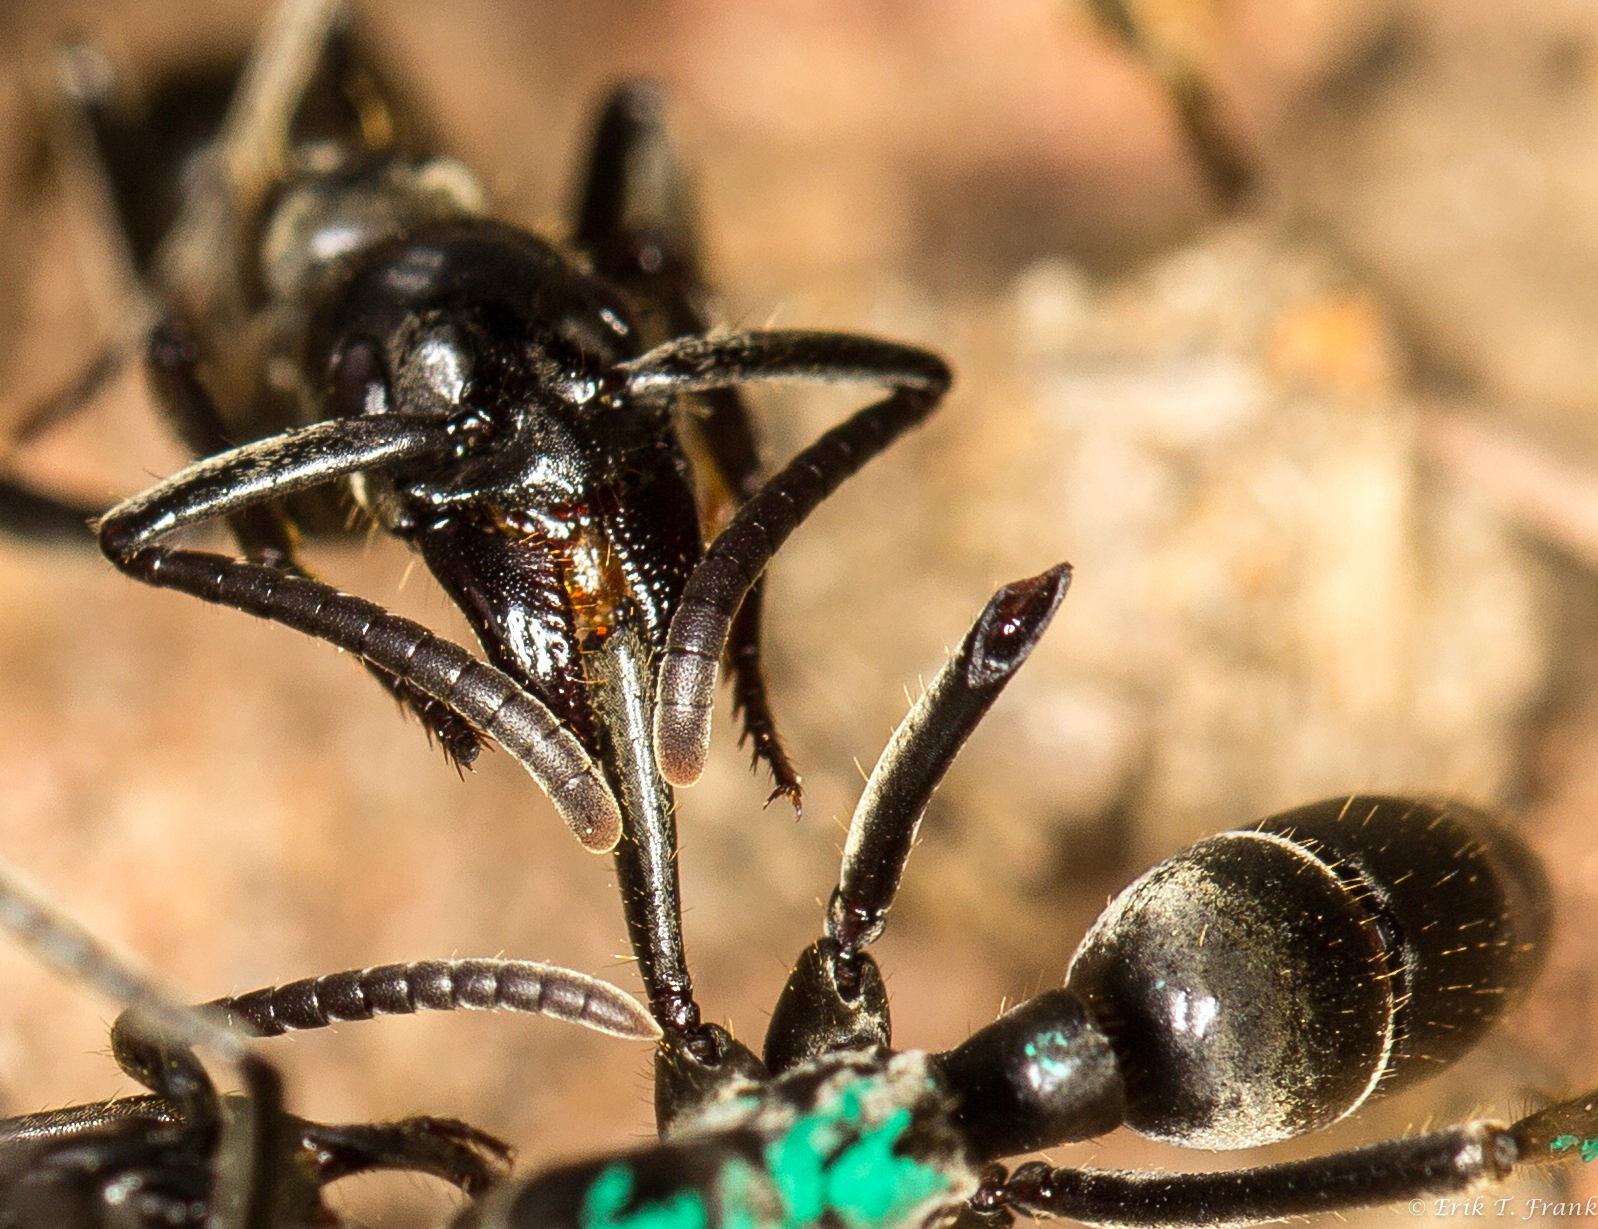 Researchers have made the incredible discovery that African Matabele ants treat each other's wounds and save each other's lives.